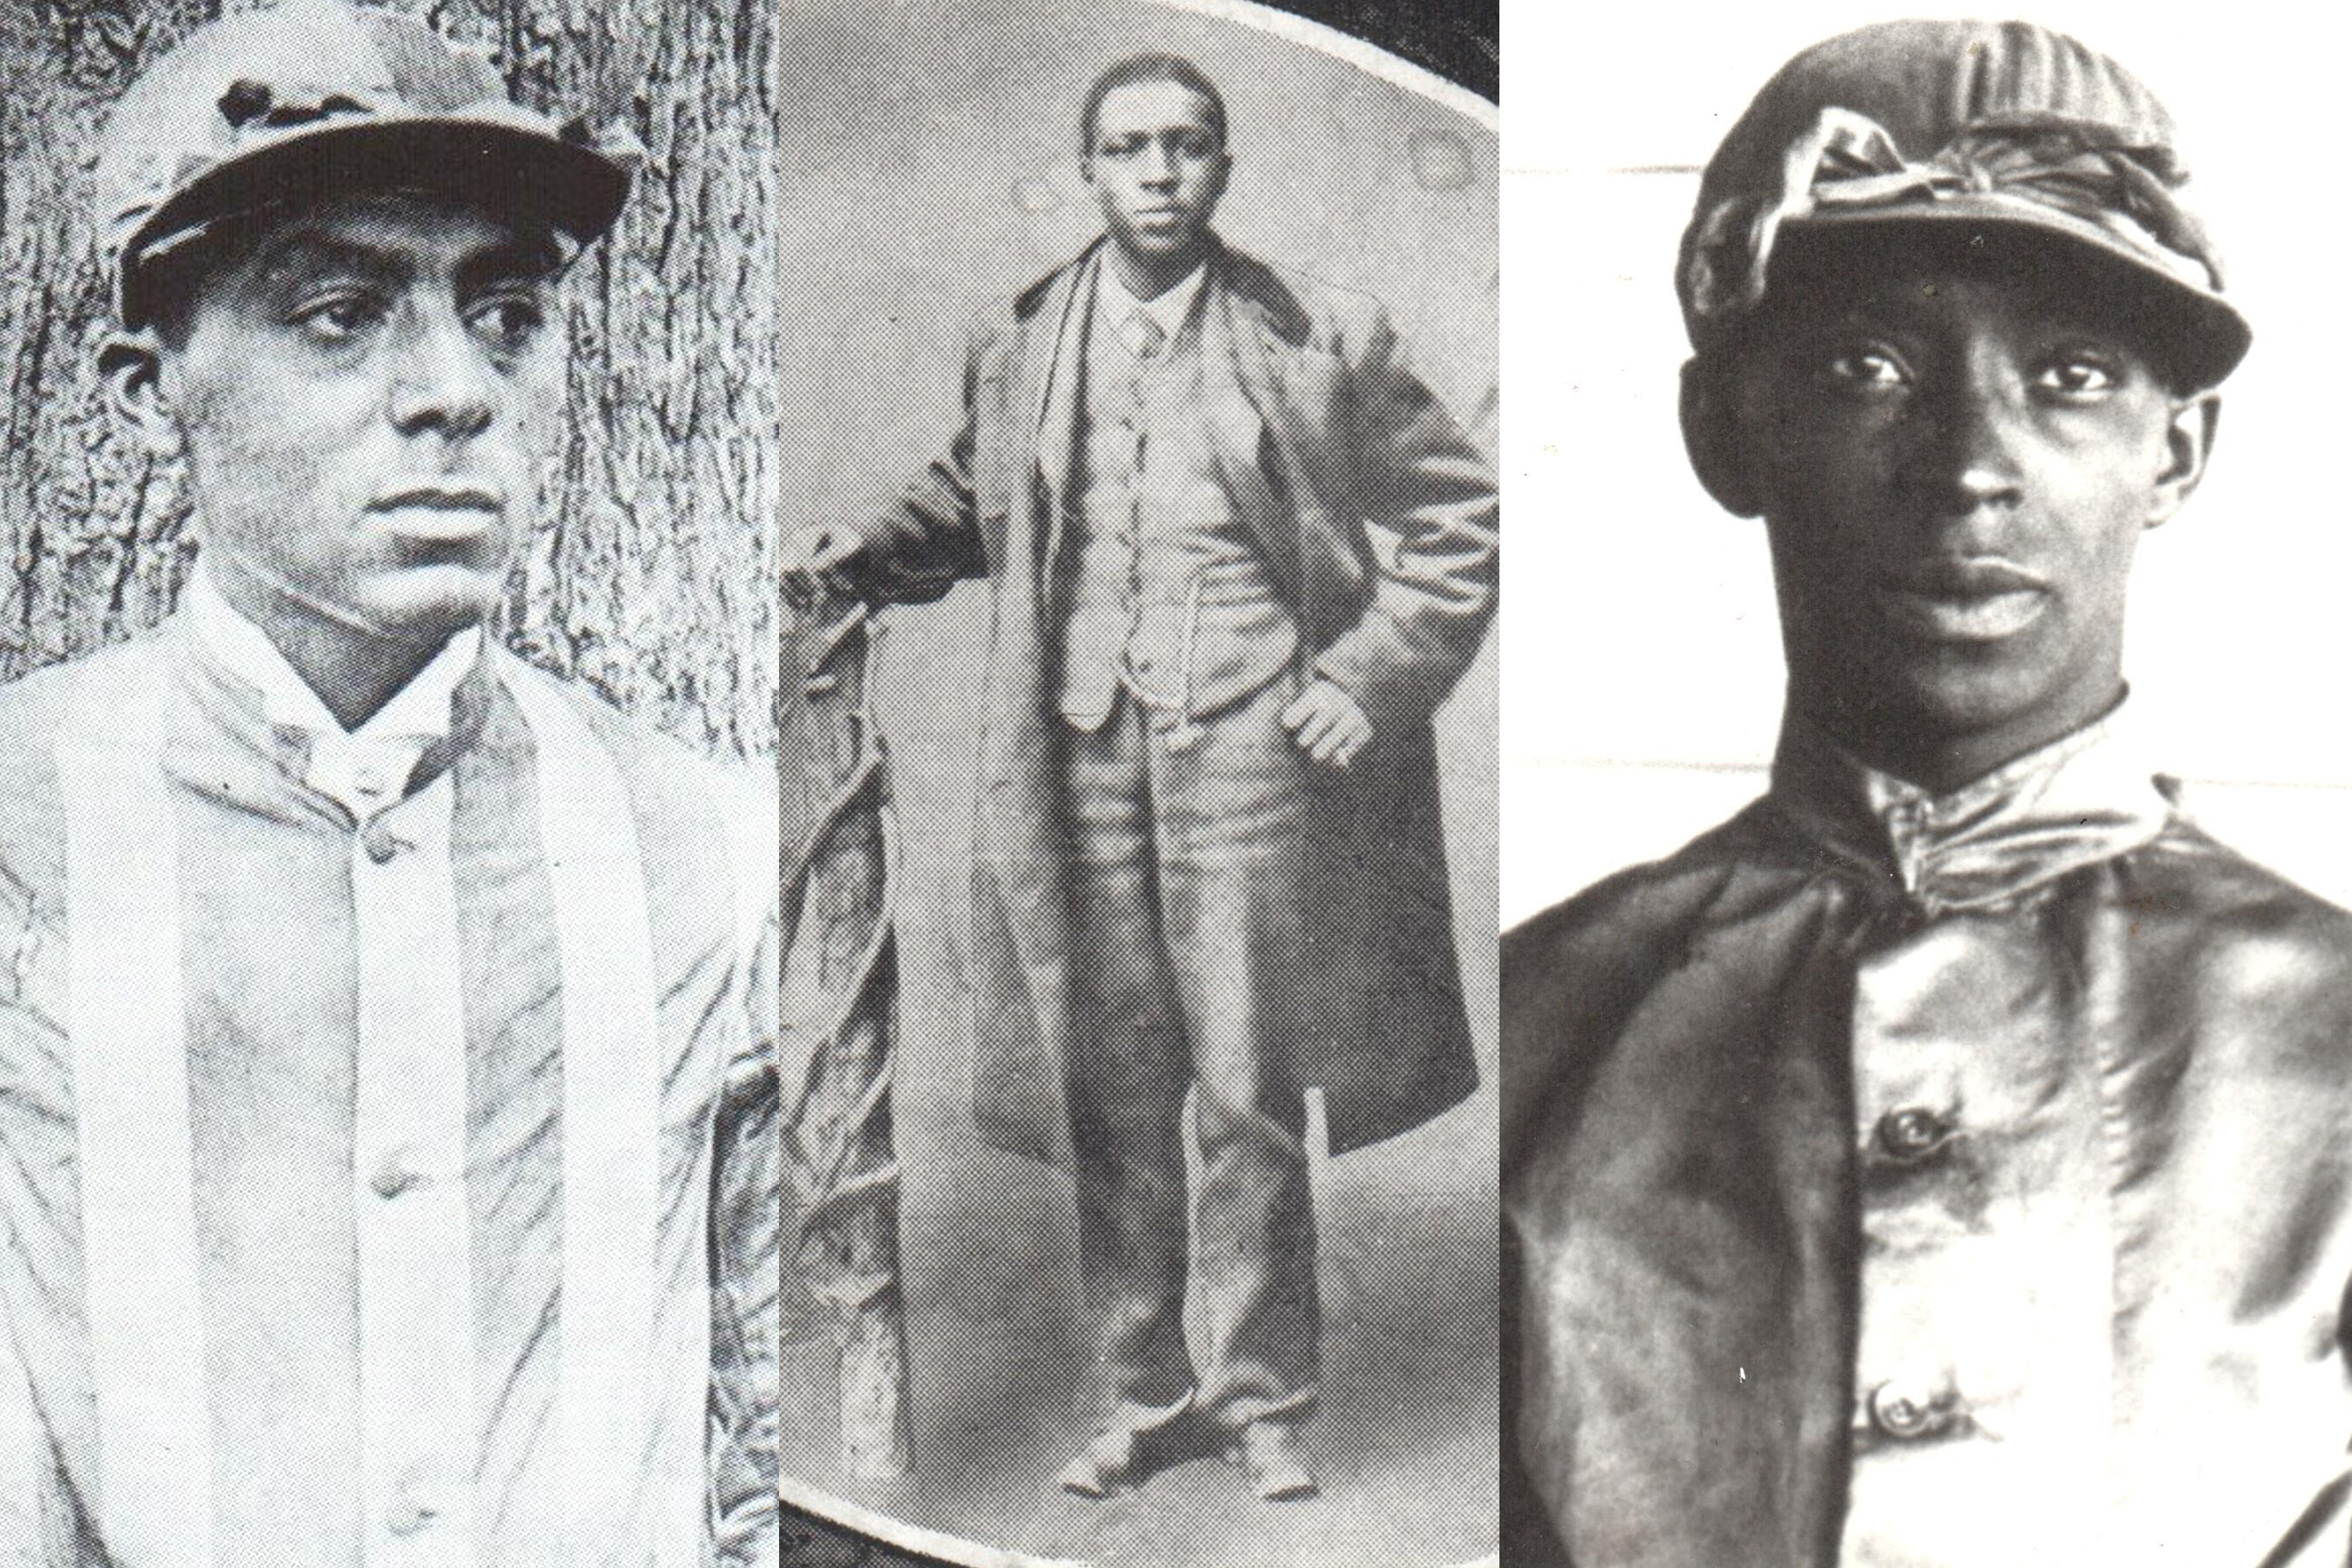 (L-R) Isaac Murphy, Oliver Lewis, Jimmy Winkfield—African-American jockeys dominated the Kentucky Derby in its early years.